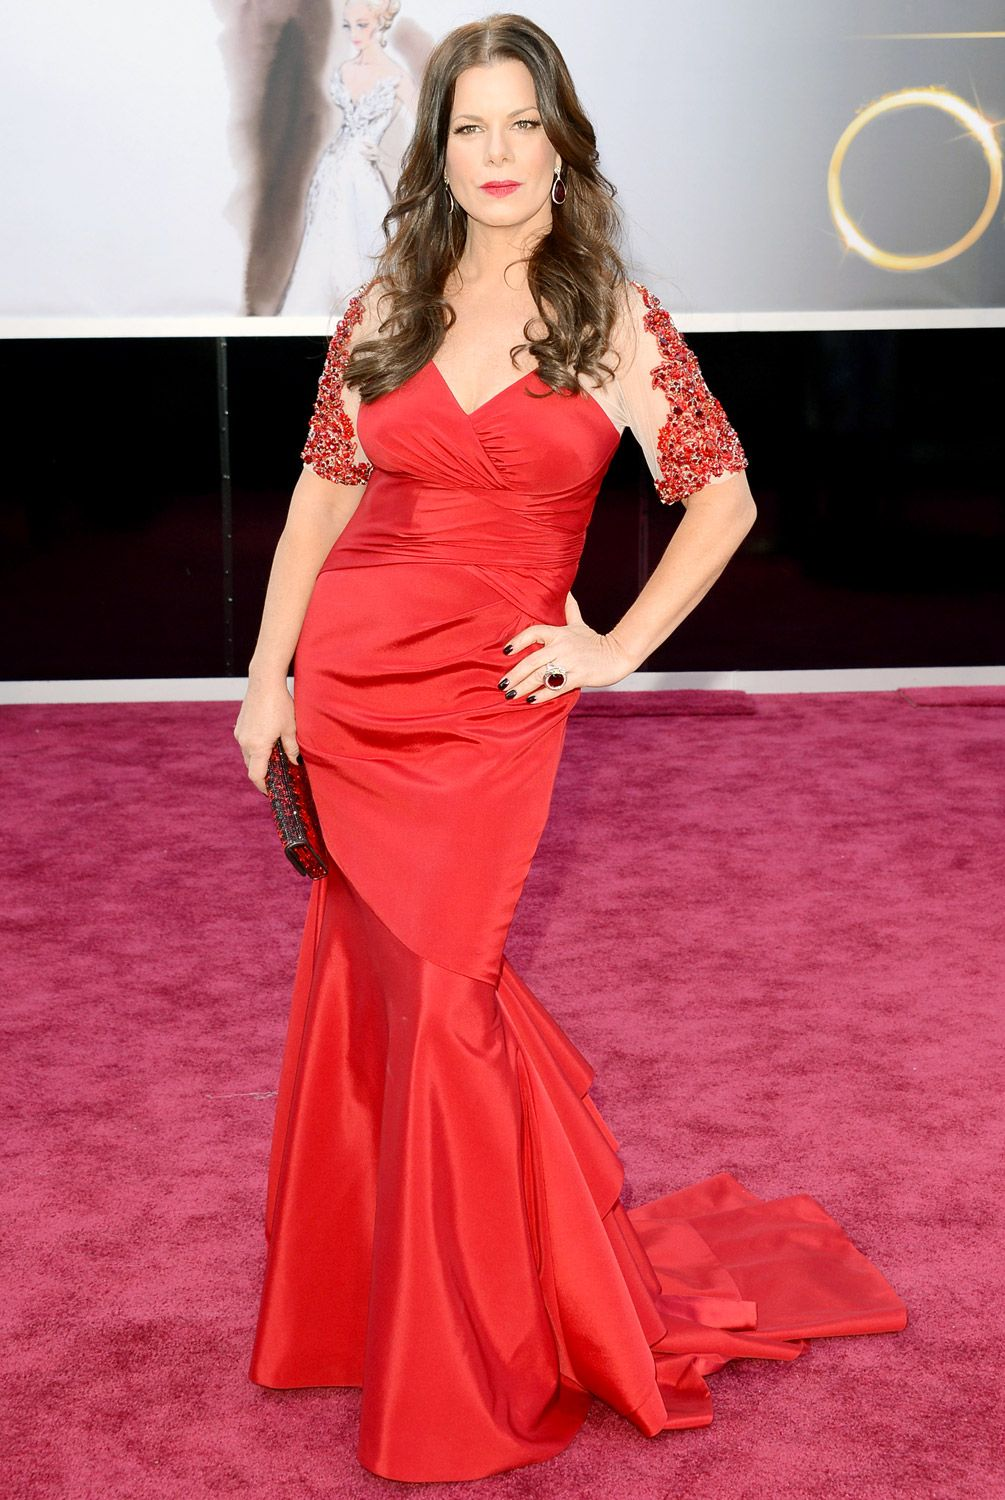 Oscars See What the Stars Wore! Red carpet oscars, Red